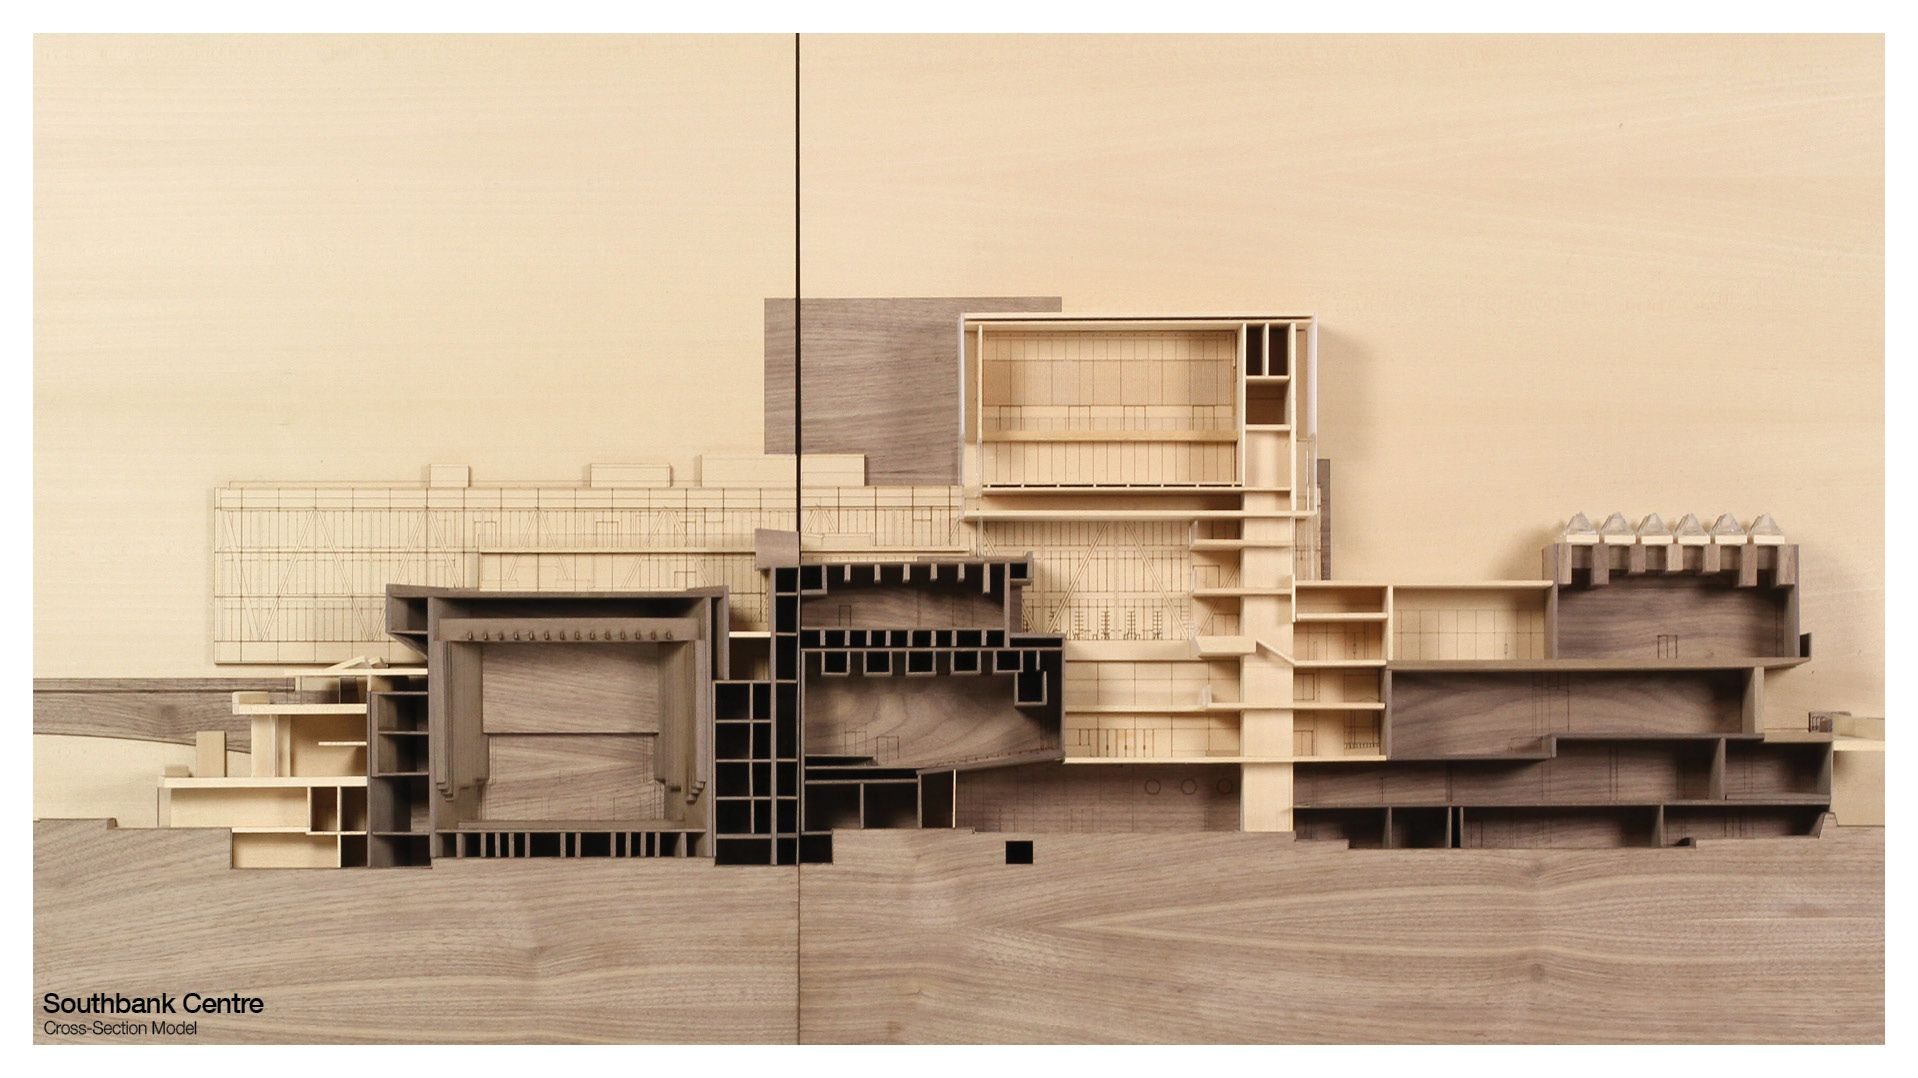 Southbank Crosssection model by kengrix 건축